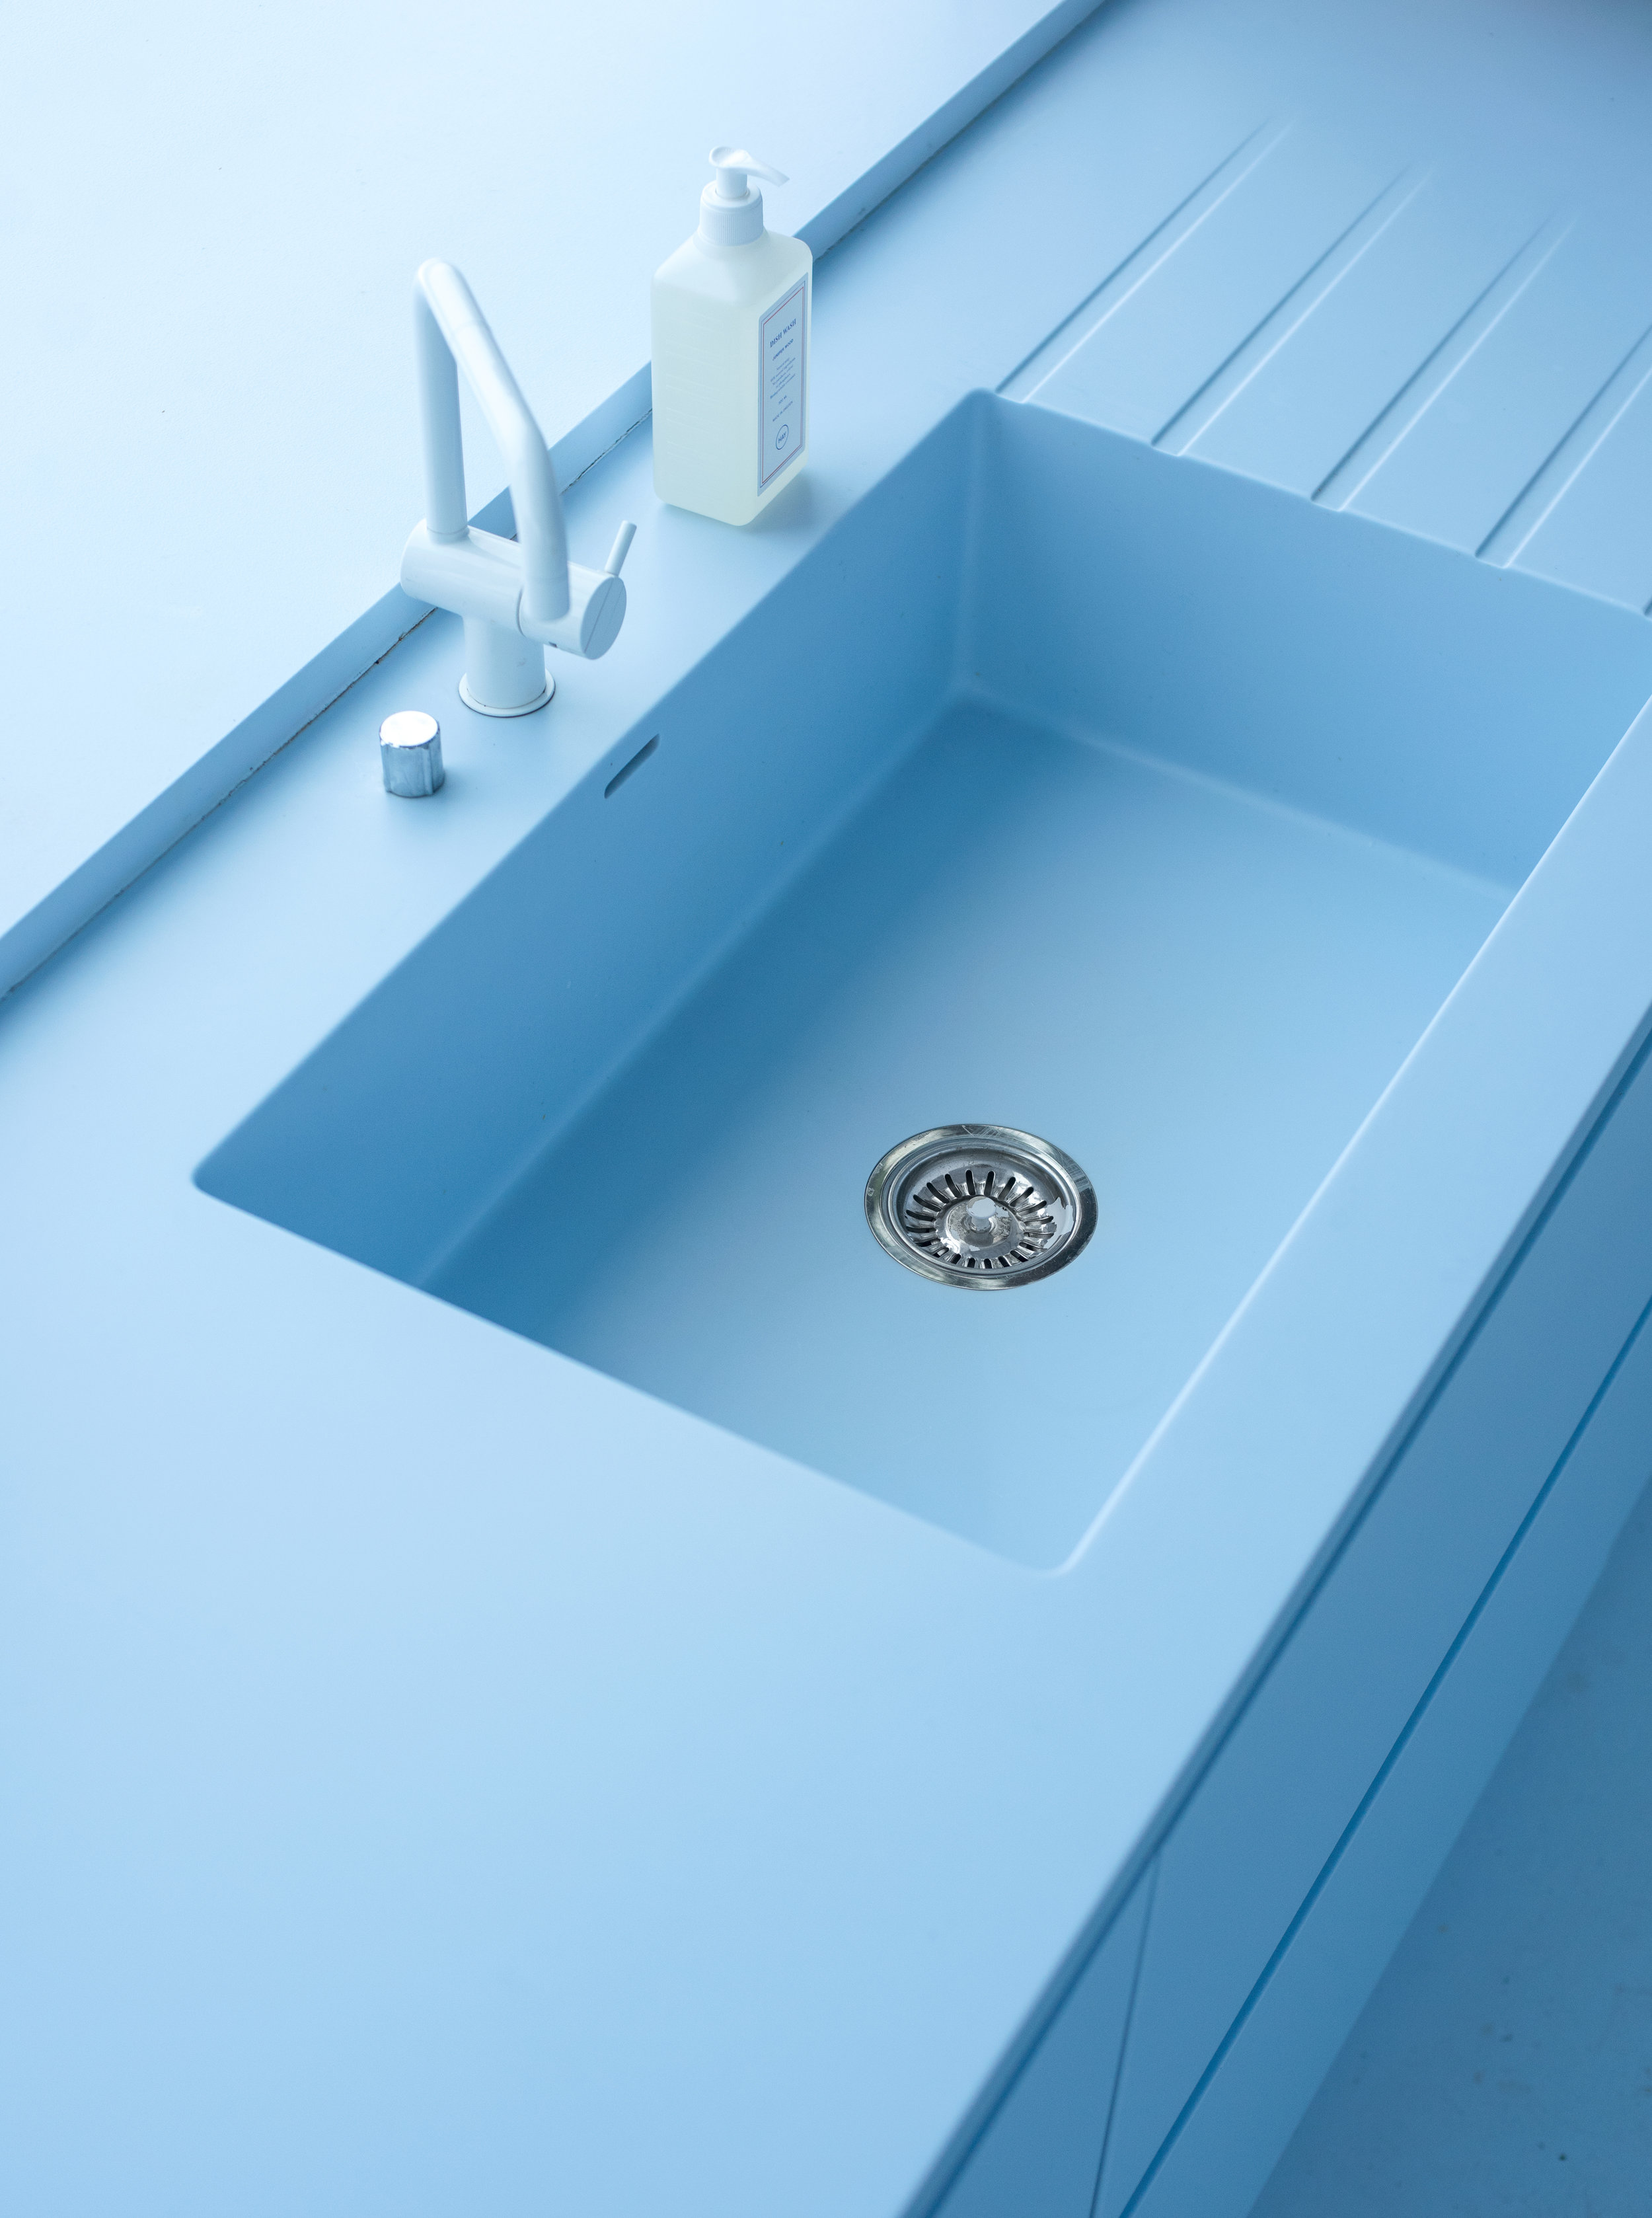 Even the bottom of the sink is a calming Azure Blue.